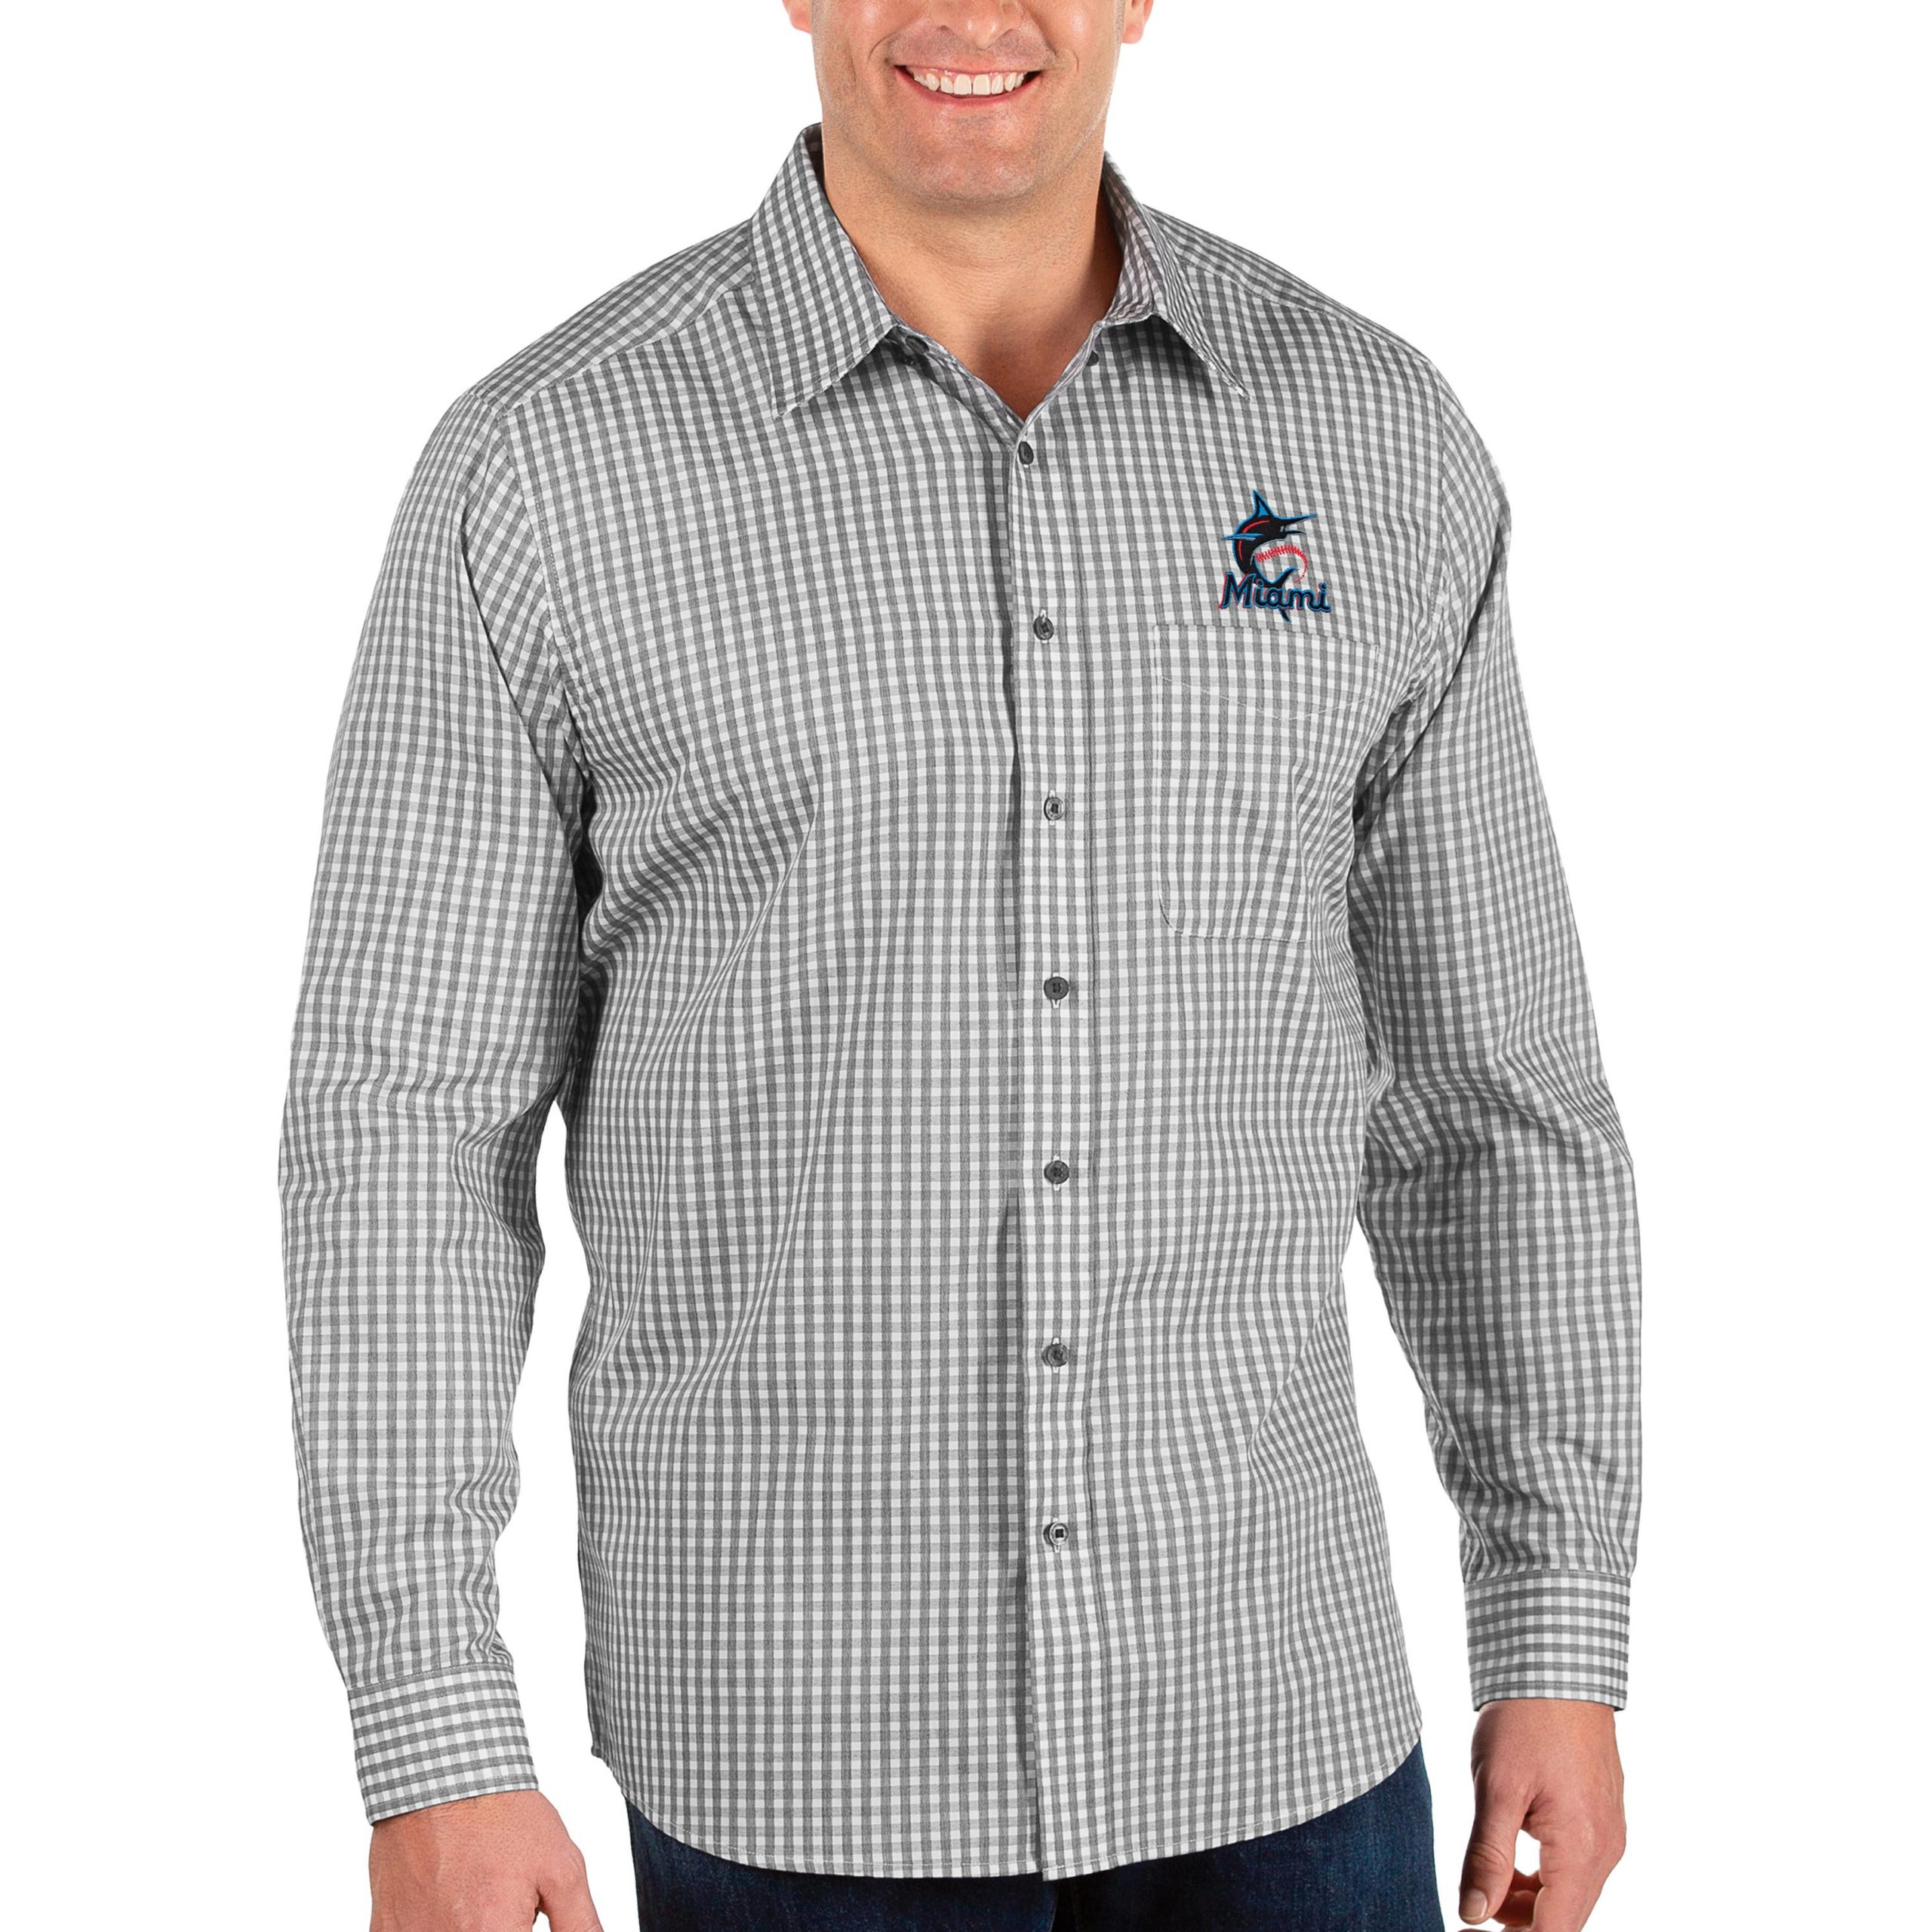 Miami Marlins Antigua Big & Tall Structure Button-Up Long Sleeve Shirt - Black/White